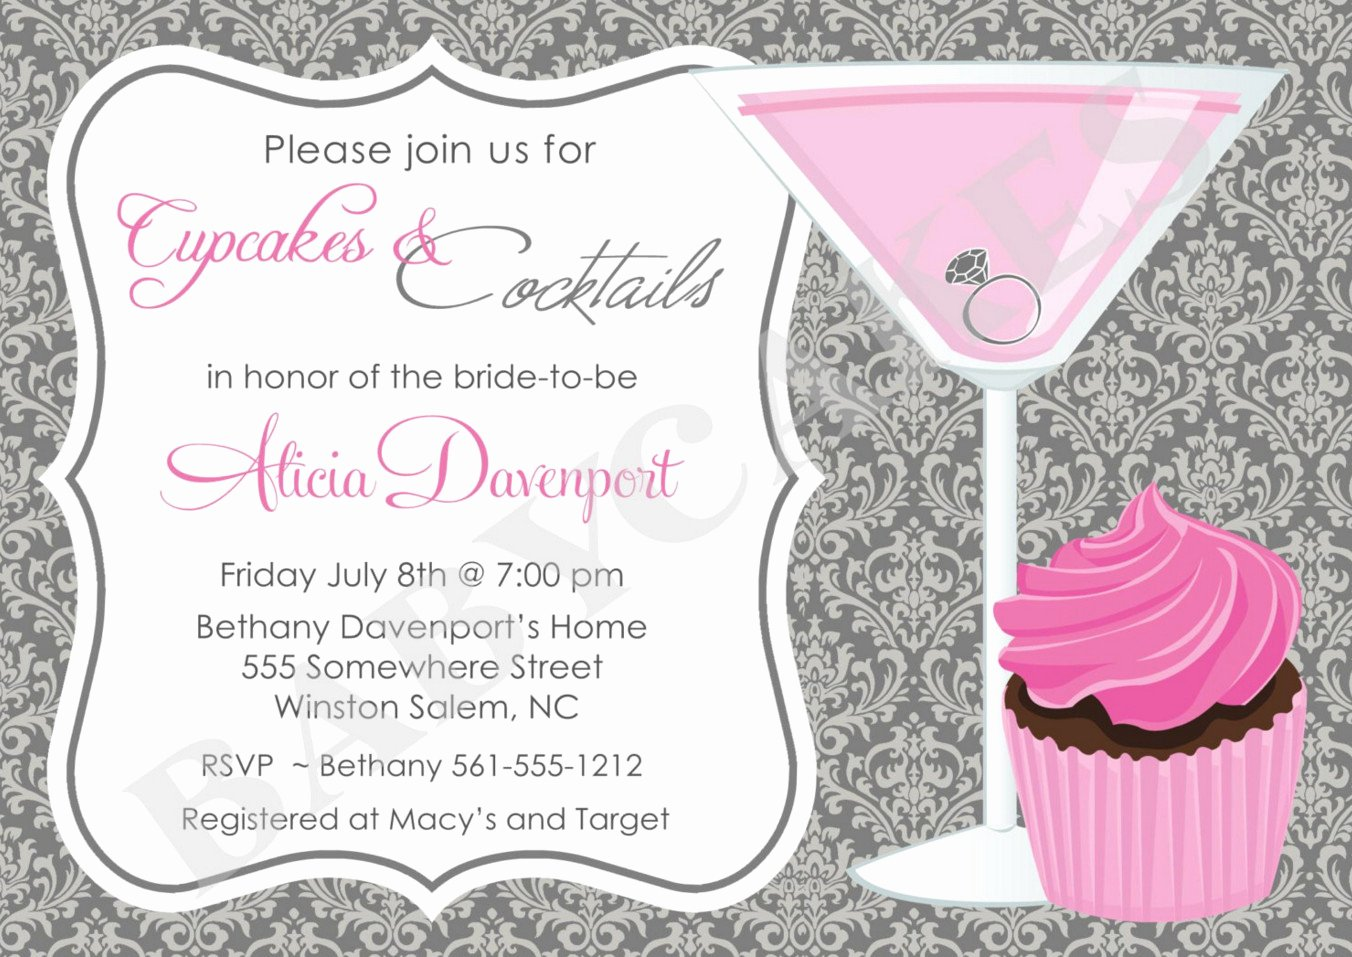 Cocktail Party Invitations Templates Free Best Cocktail